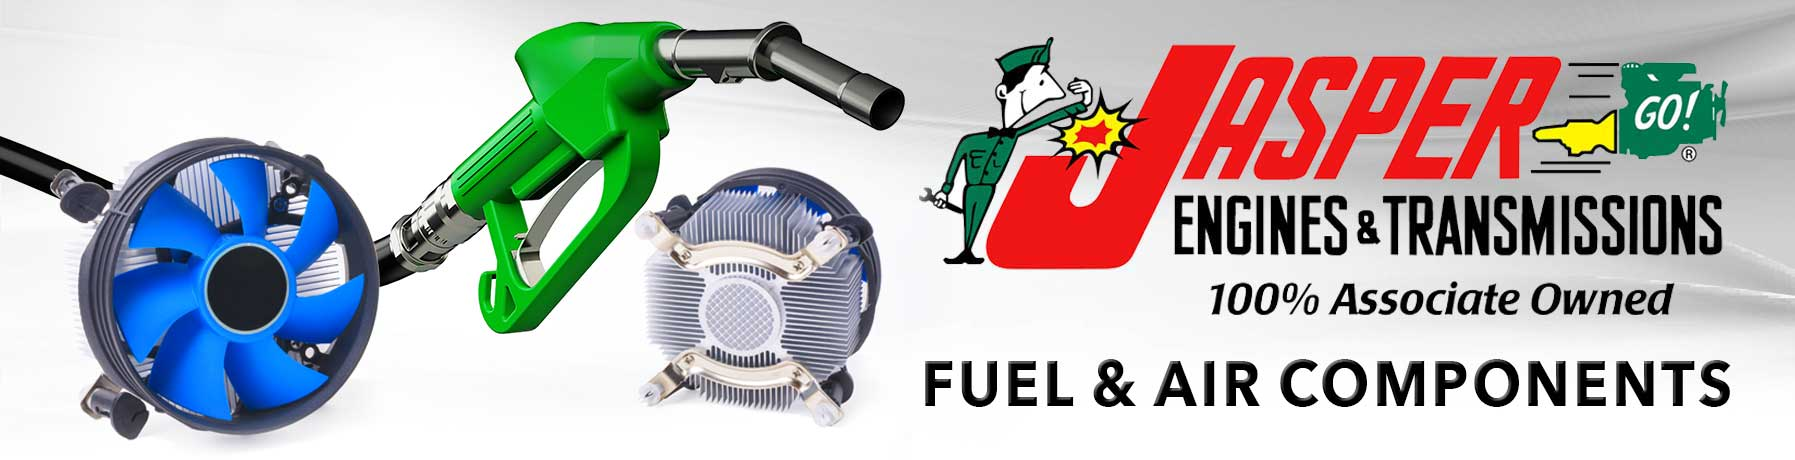 Jasper Engines and Transmissions 100% Associate Owned Fuel & Air Components